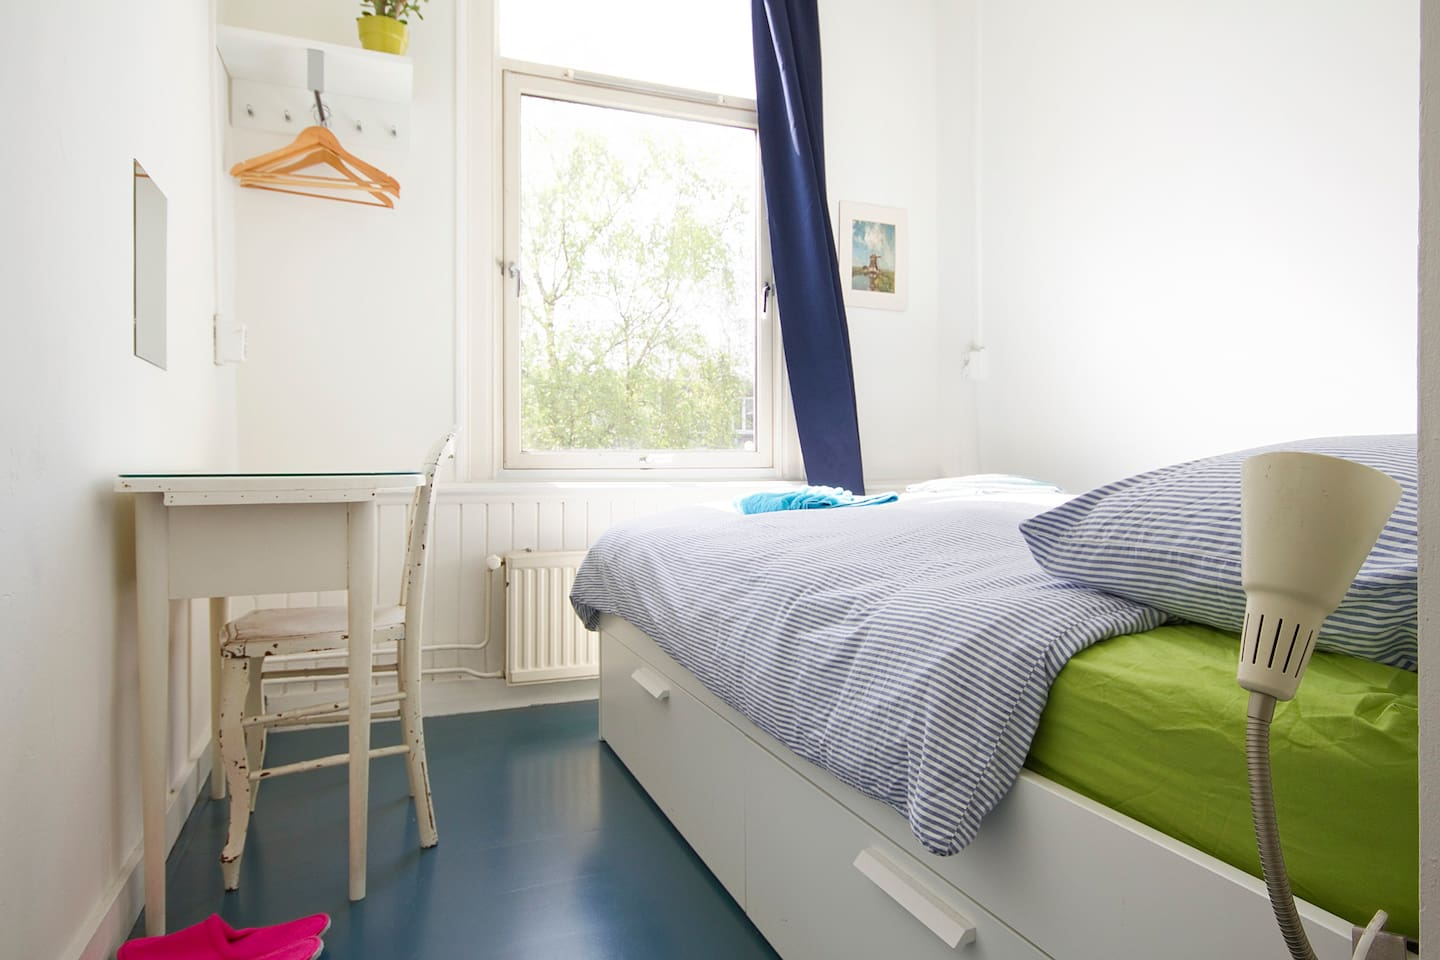 Very cosy bedroom, excellent matrass, light blocking curtains